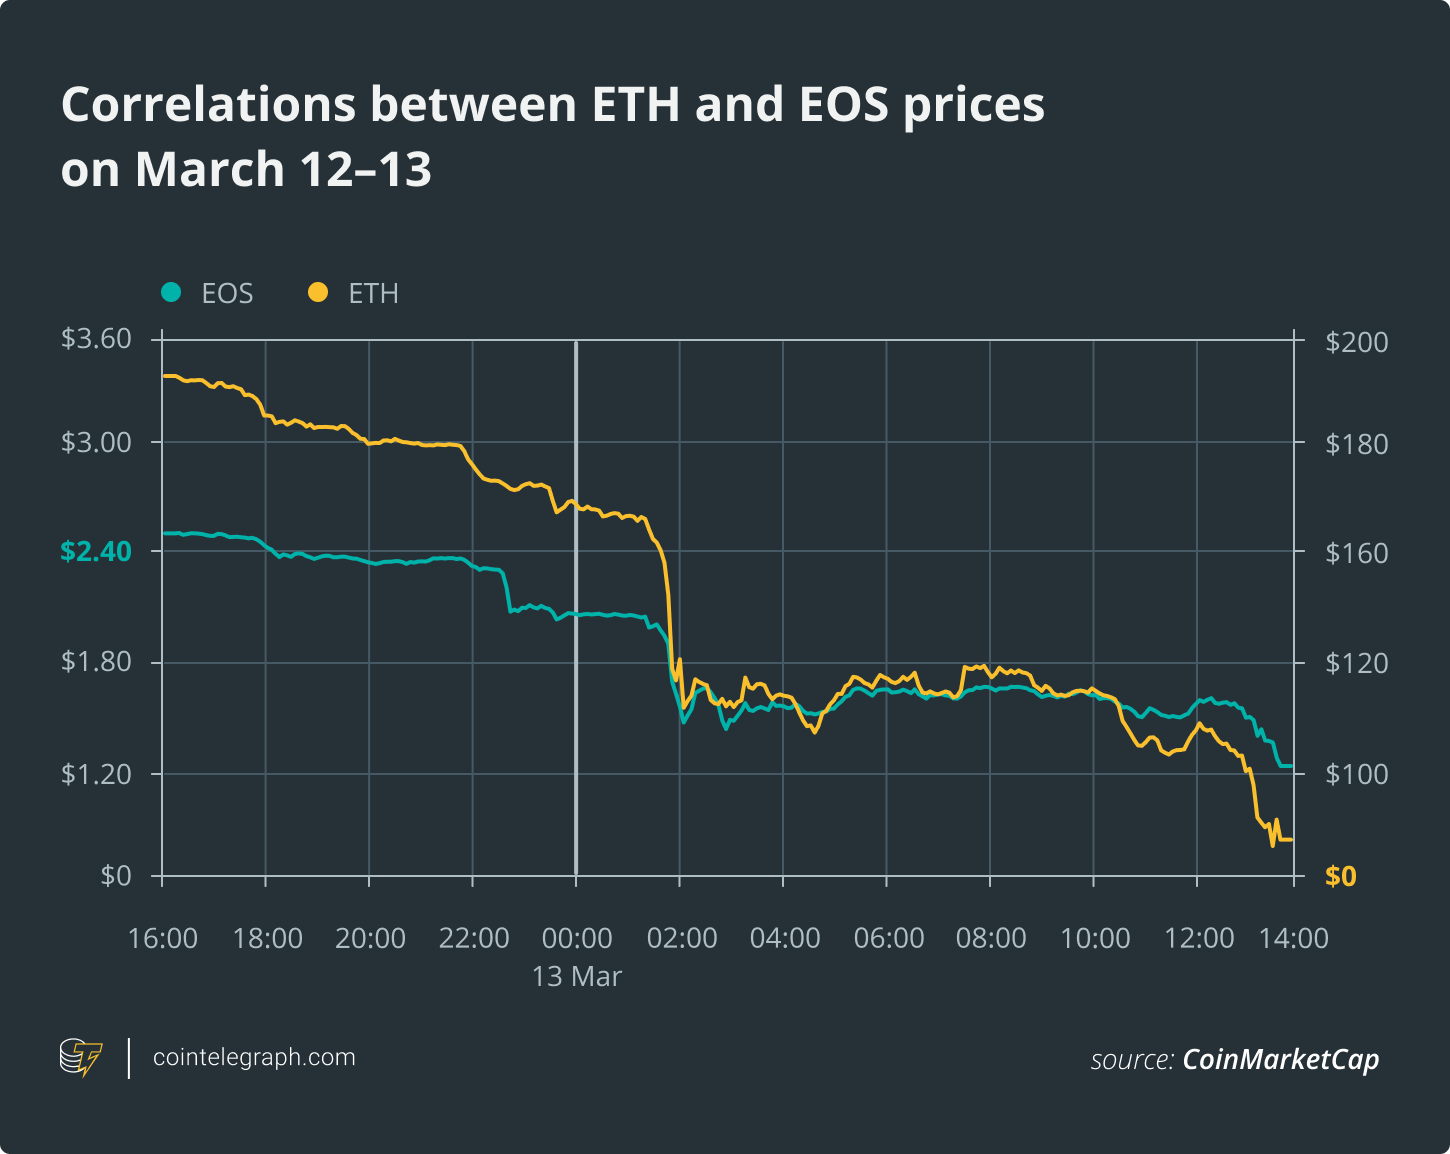 Correlations between ETH and EOS prices on March 12-13